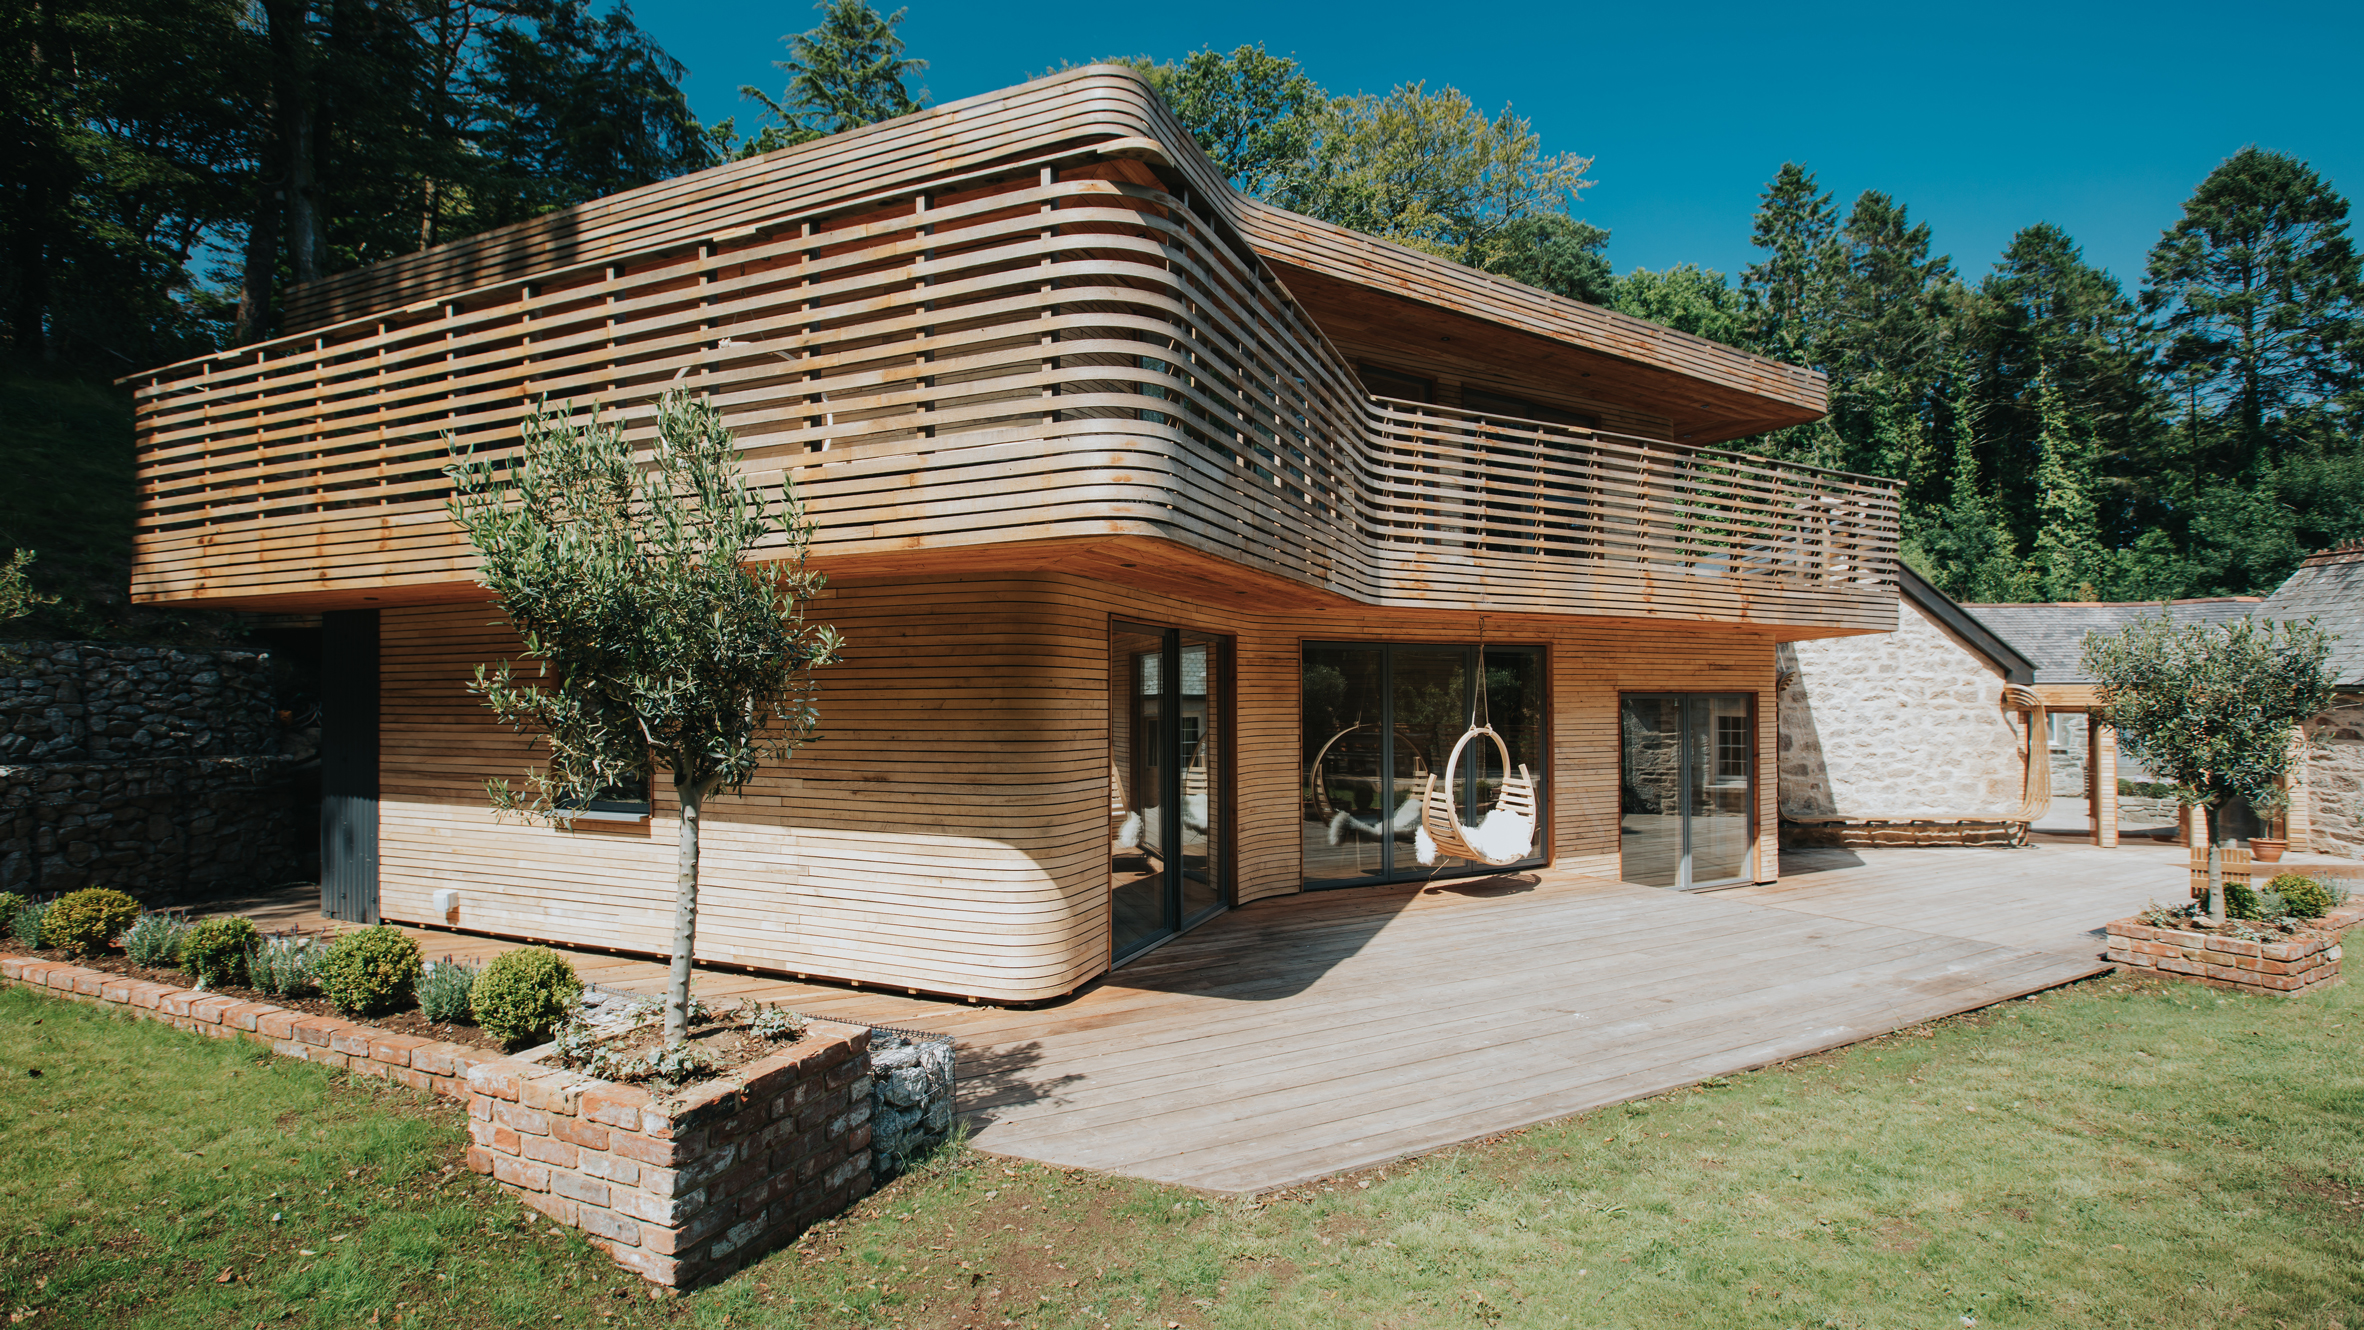 Steambent house by Tom Raffield